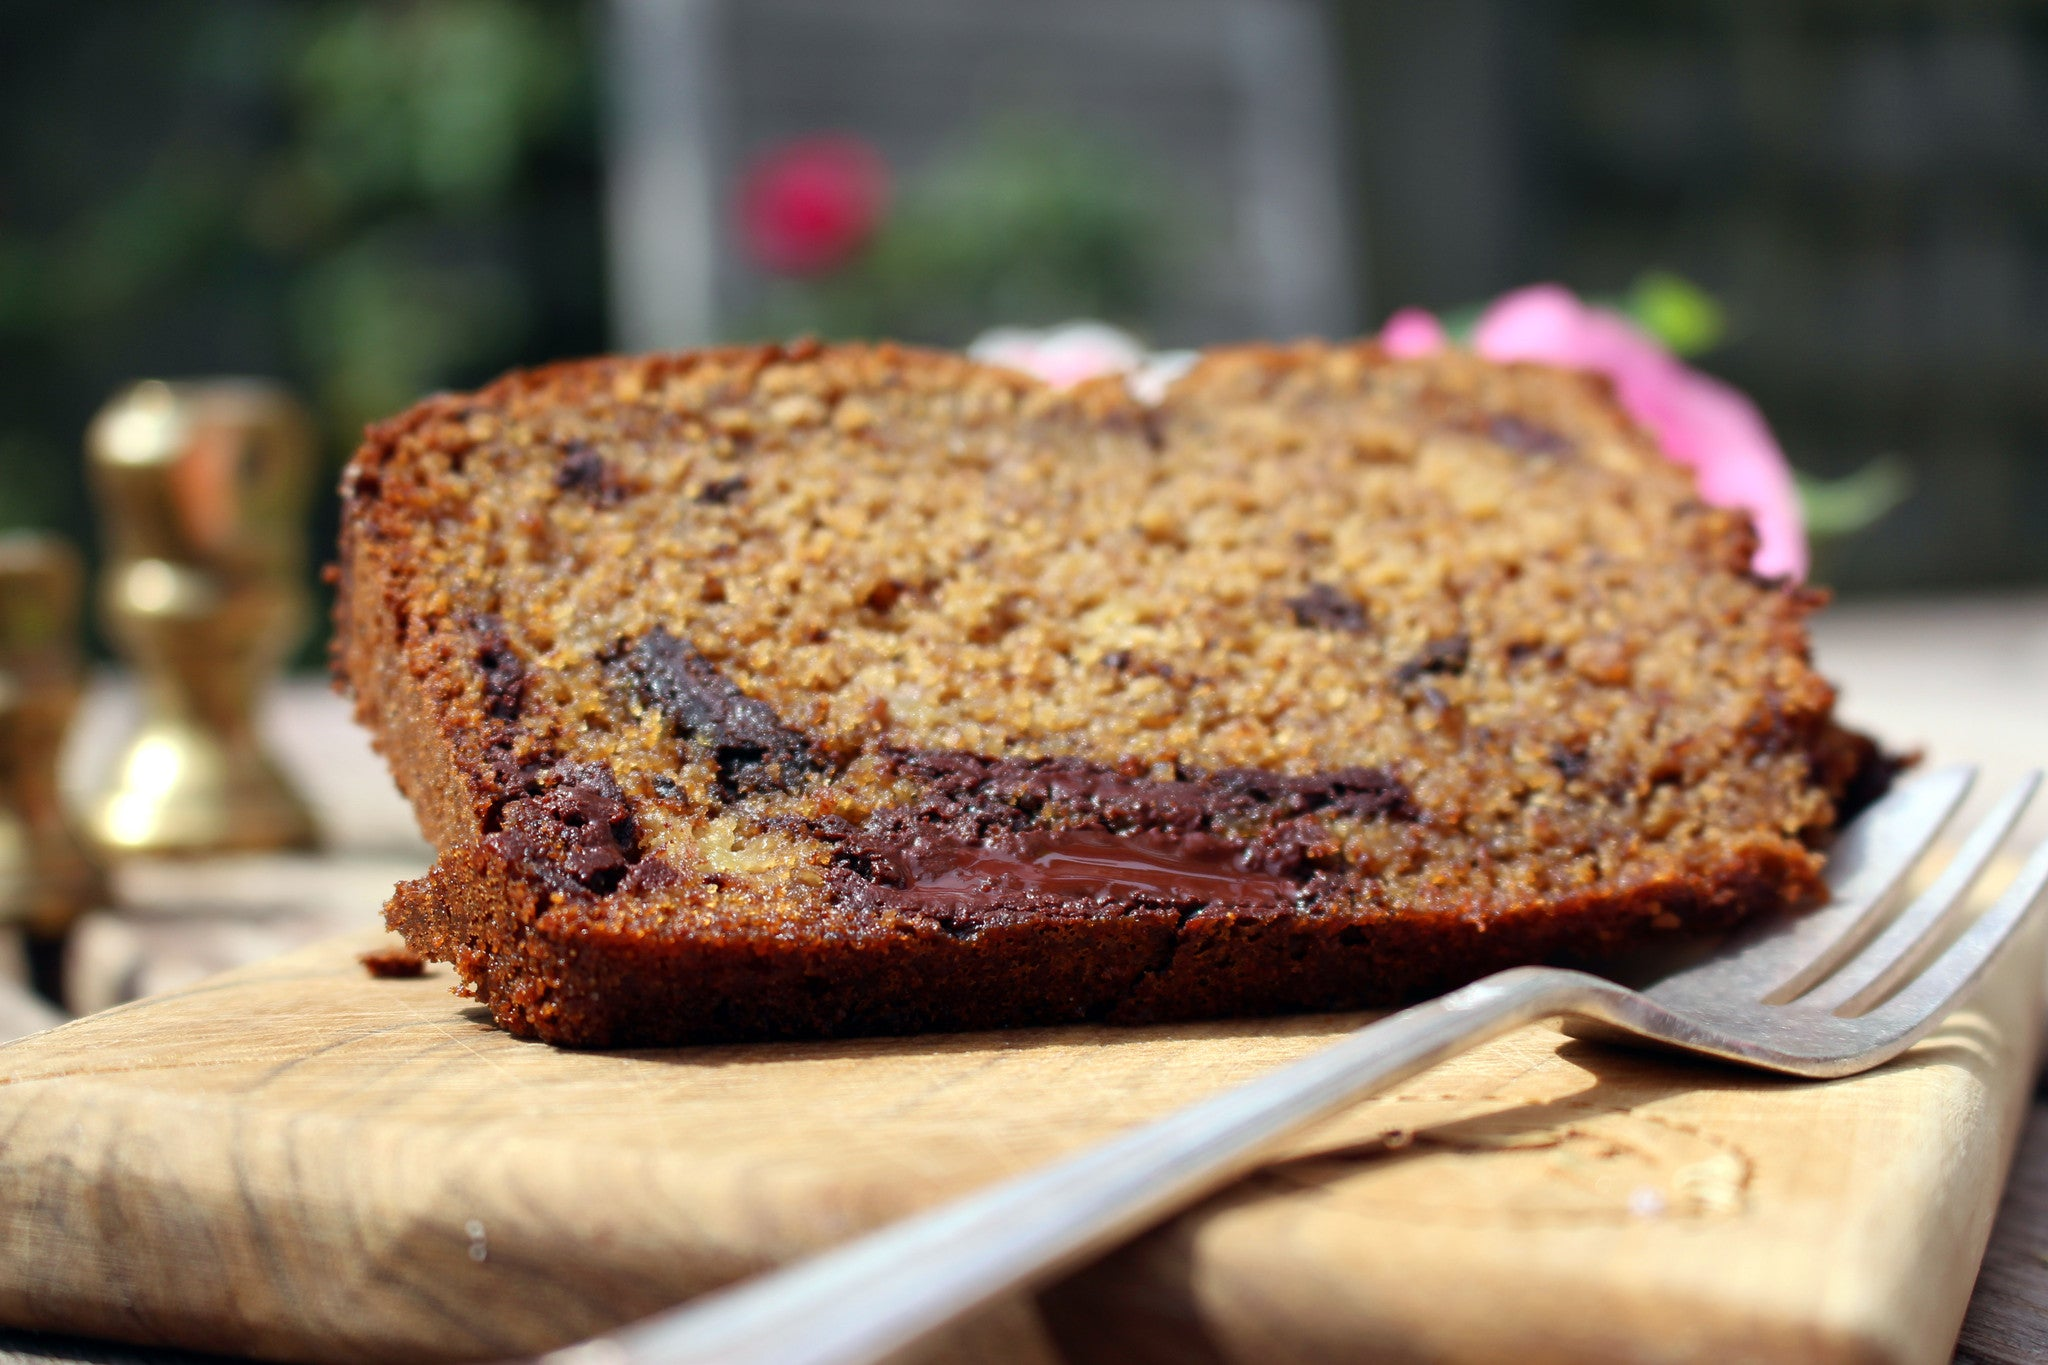 Chocolate chunk & banana cake recipe kit